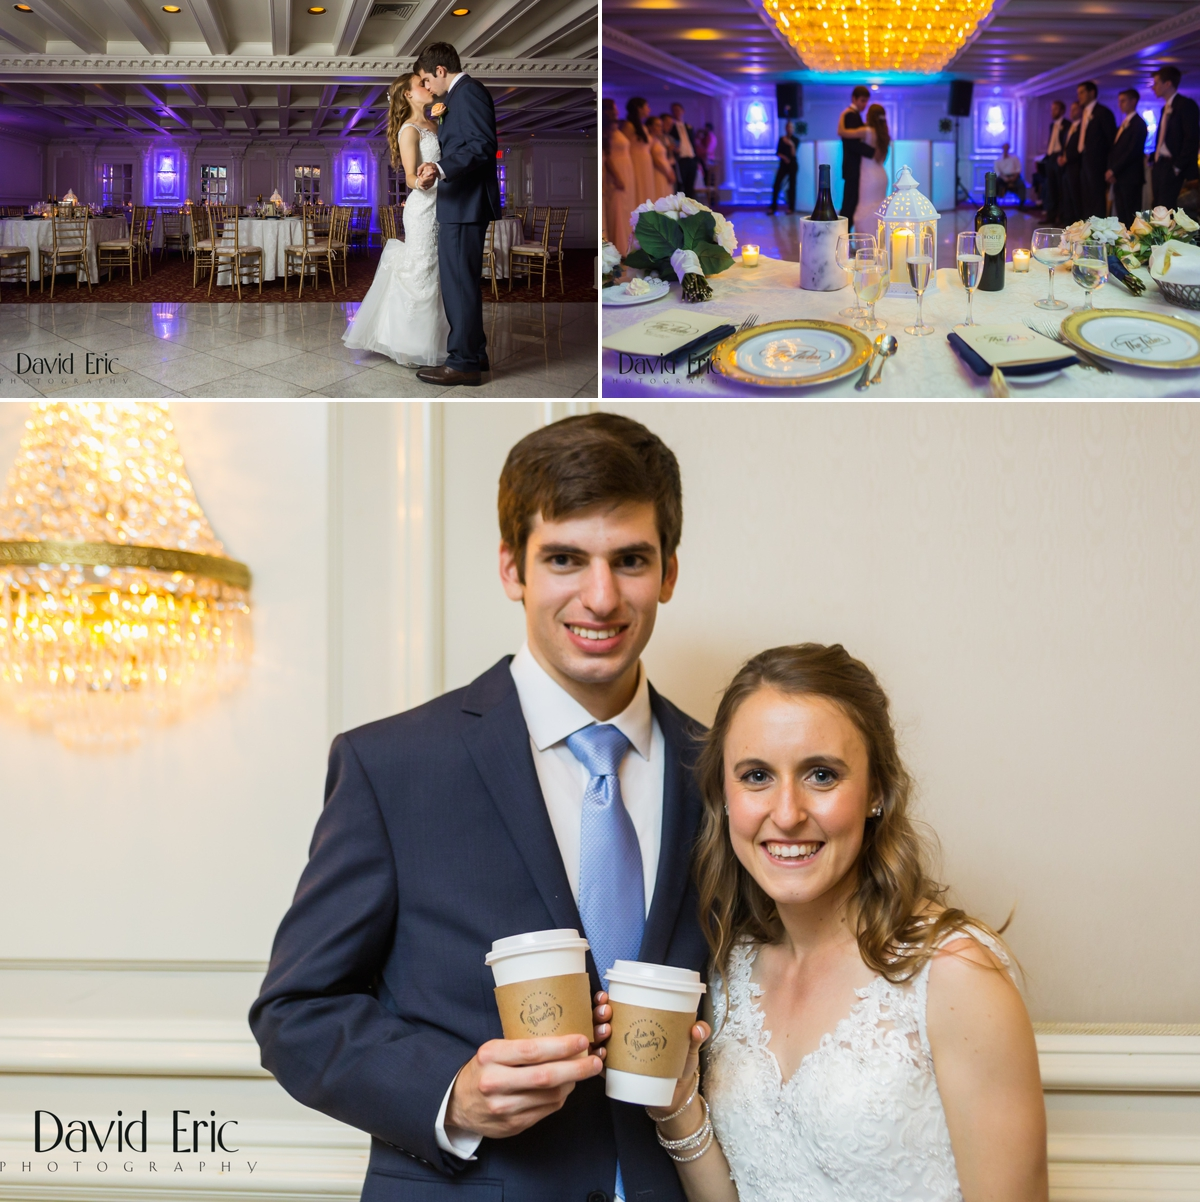 The Tides Estate Haledon NJ - David Eric Photography 5